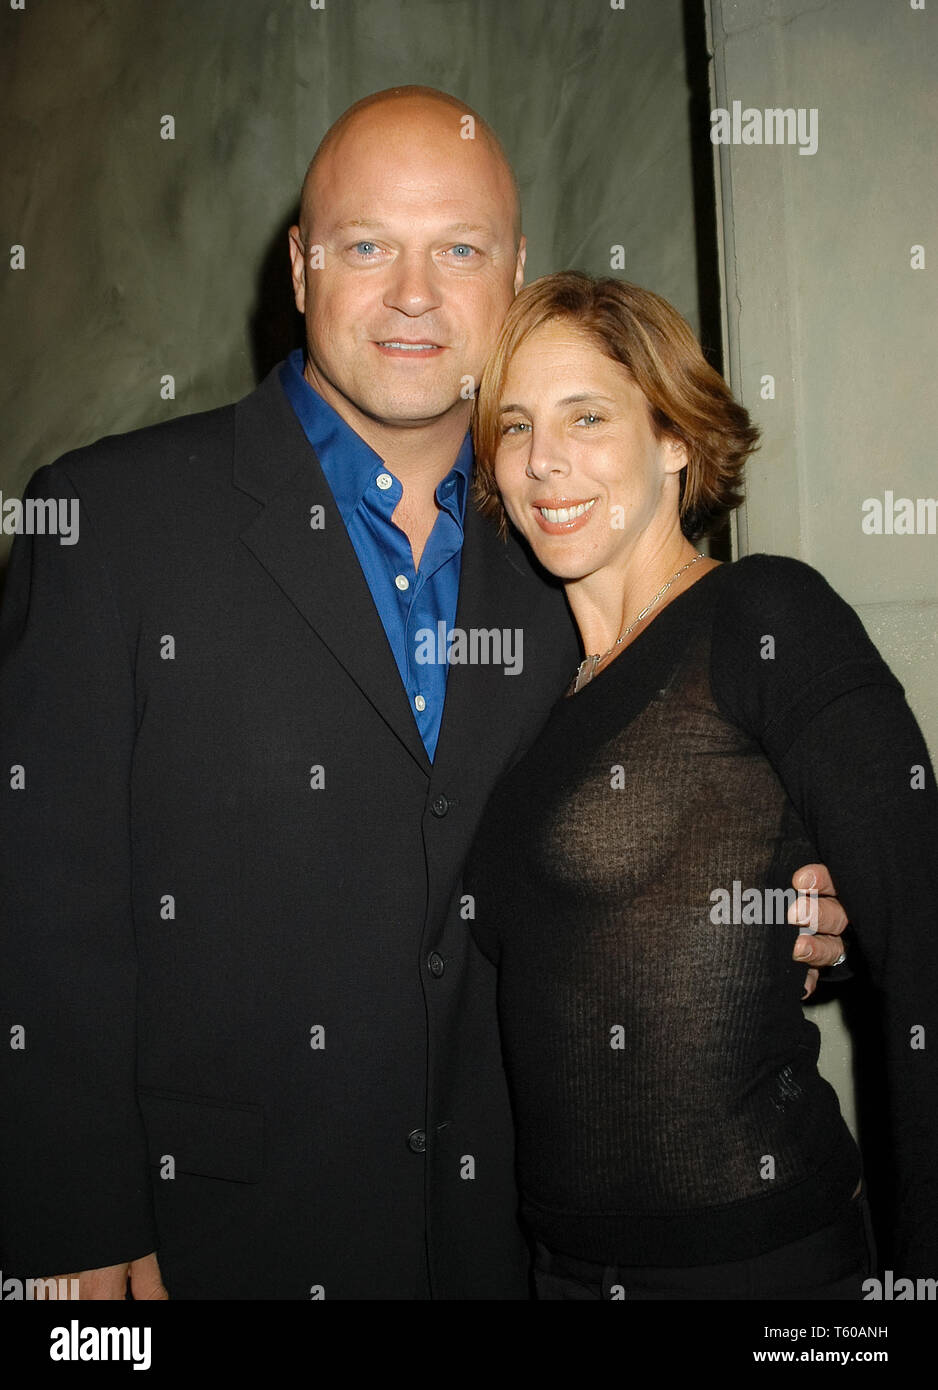 Michael Chiklis & Wife Michelle at the Academy of Television Arts & Sciences dinner honoring the 55th Annual Primetime Emmy Awards Nominees for Outstanding Performing Talent at Spagos in Beverly Hills, CA. The event took place on Thursday, September 18, 2003. Photo by: SBM / PictureLux  File Reference # 33790_1116SBMPLX - Stock Image